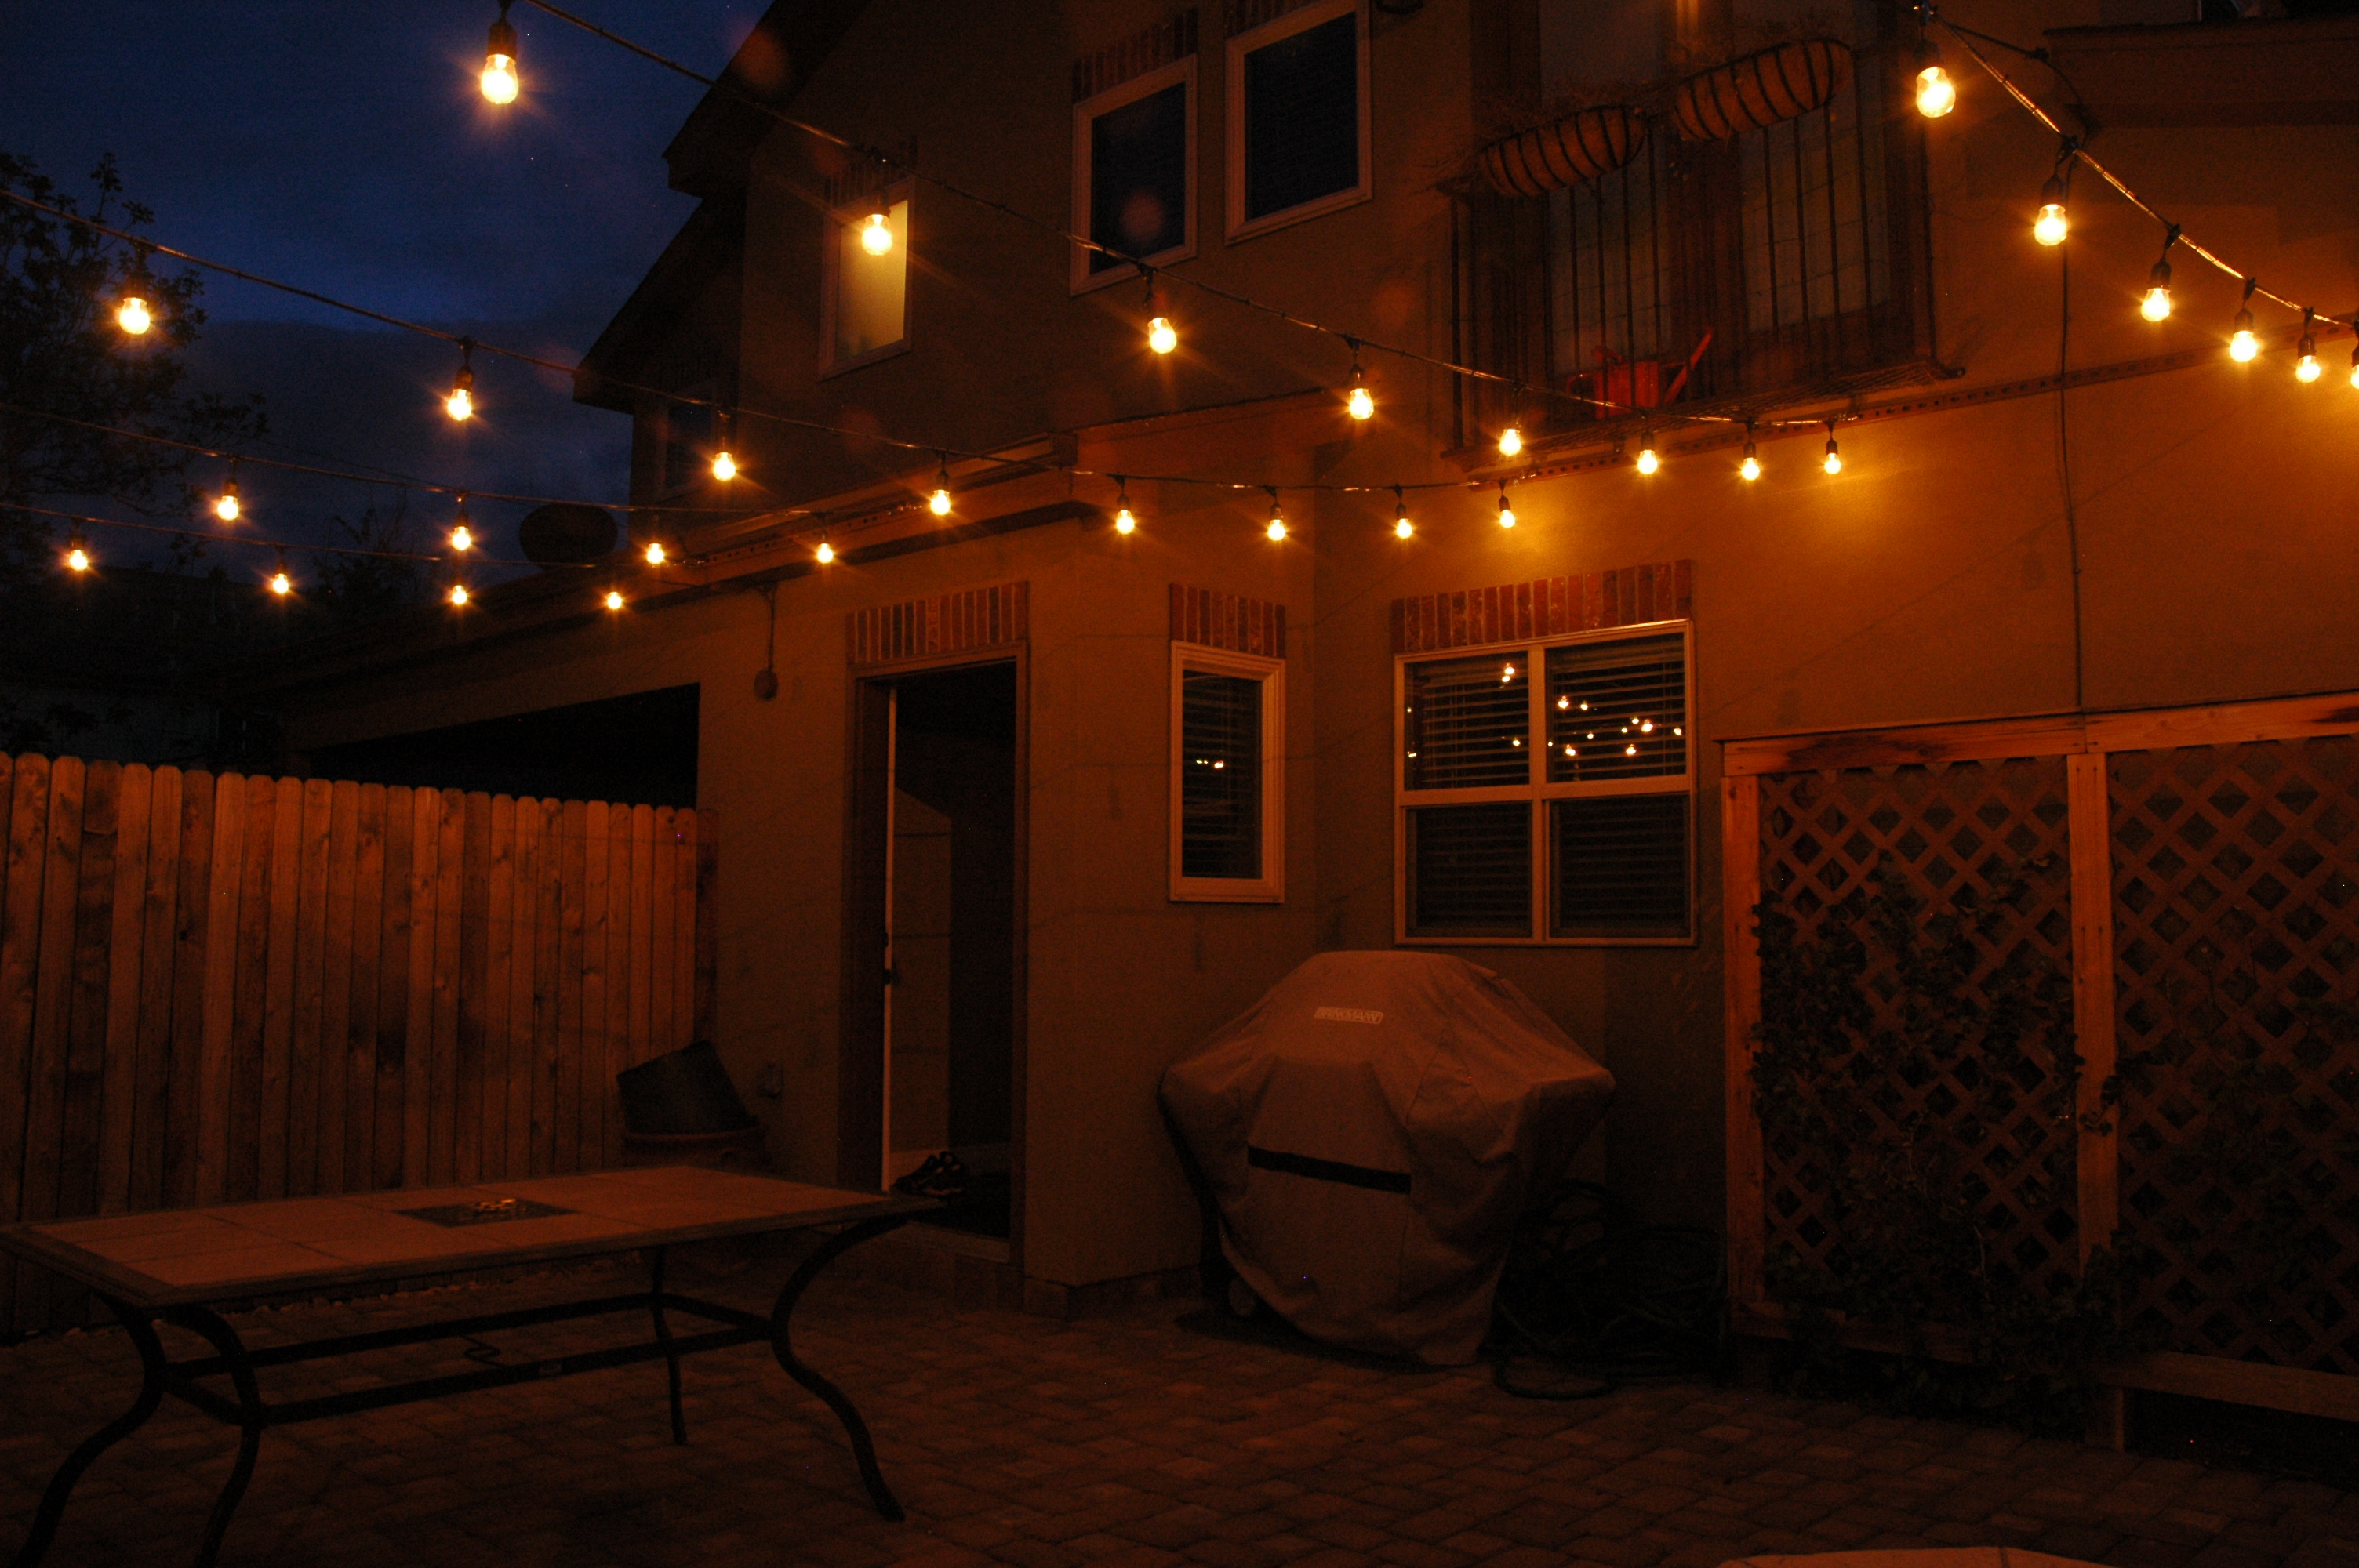 Permanent Festival Lighting For Outdoor Areas Nashville